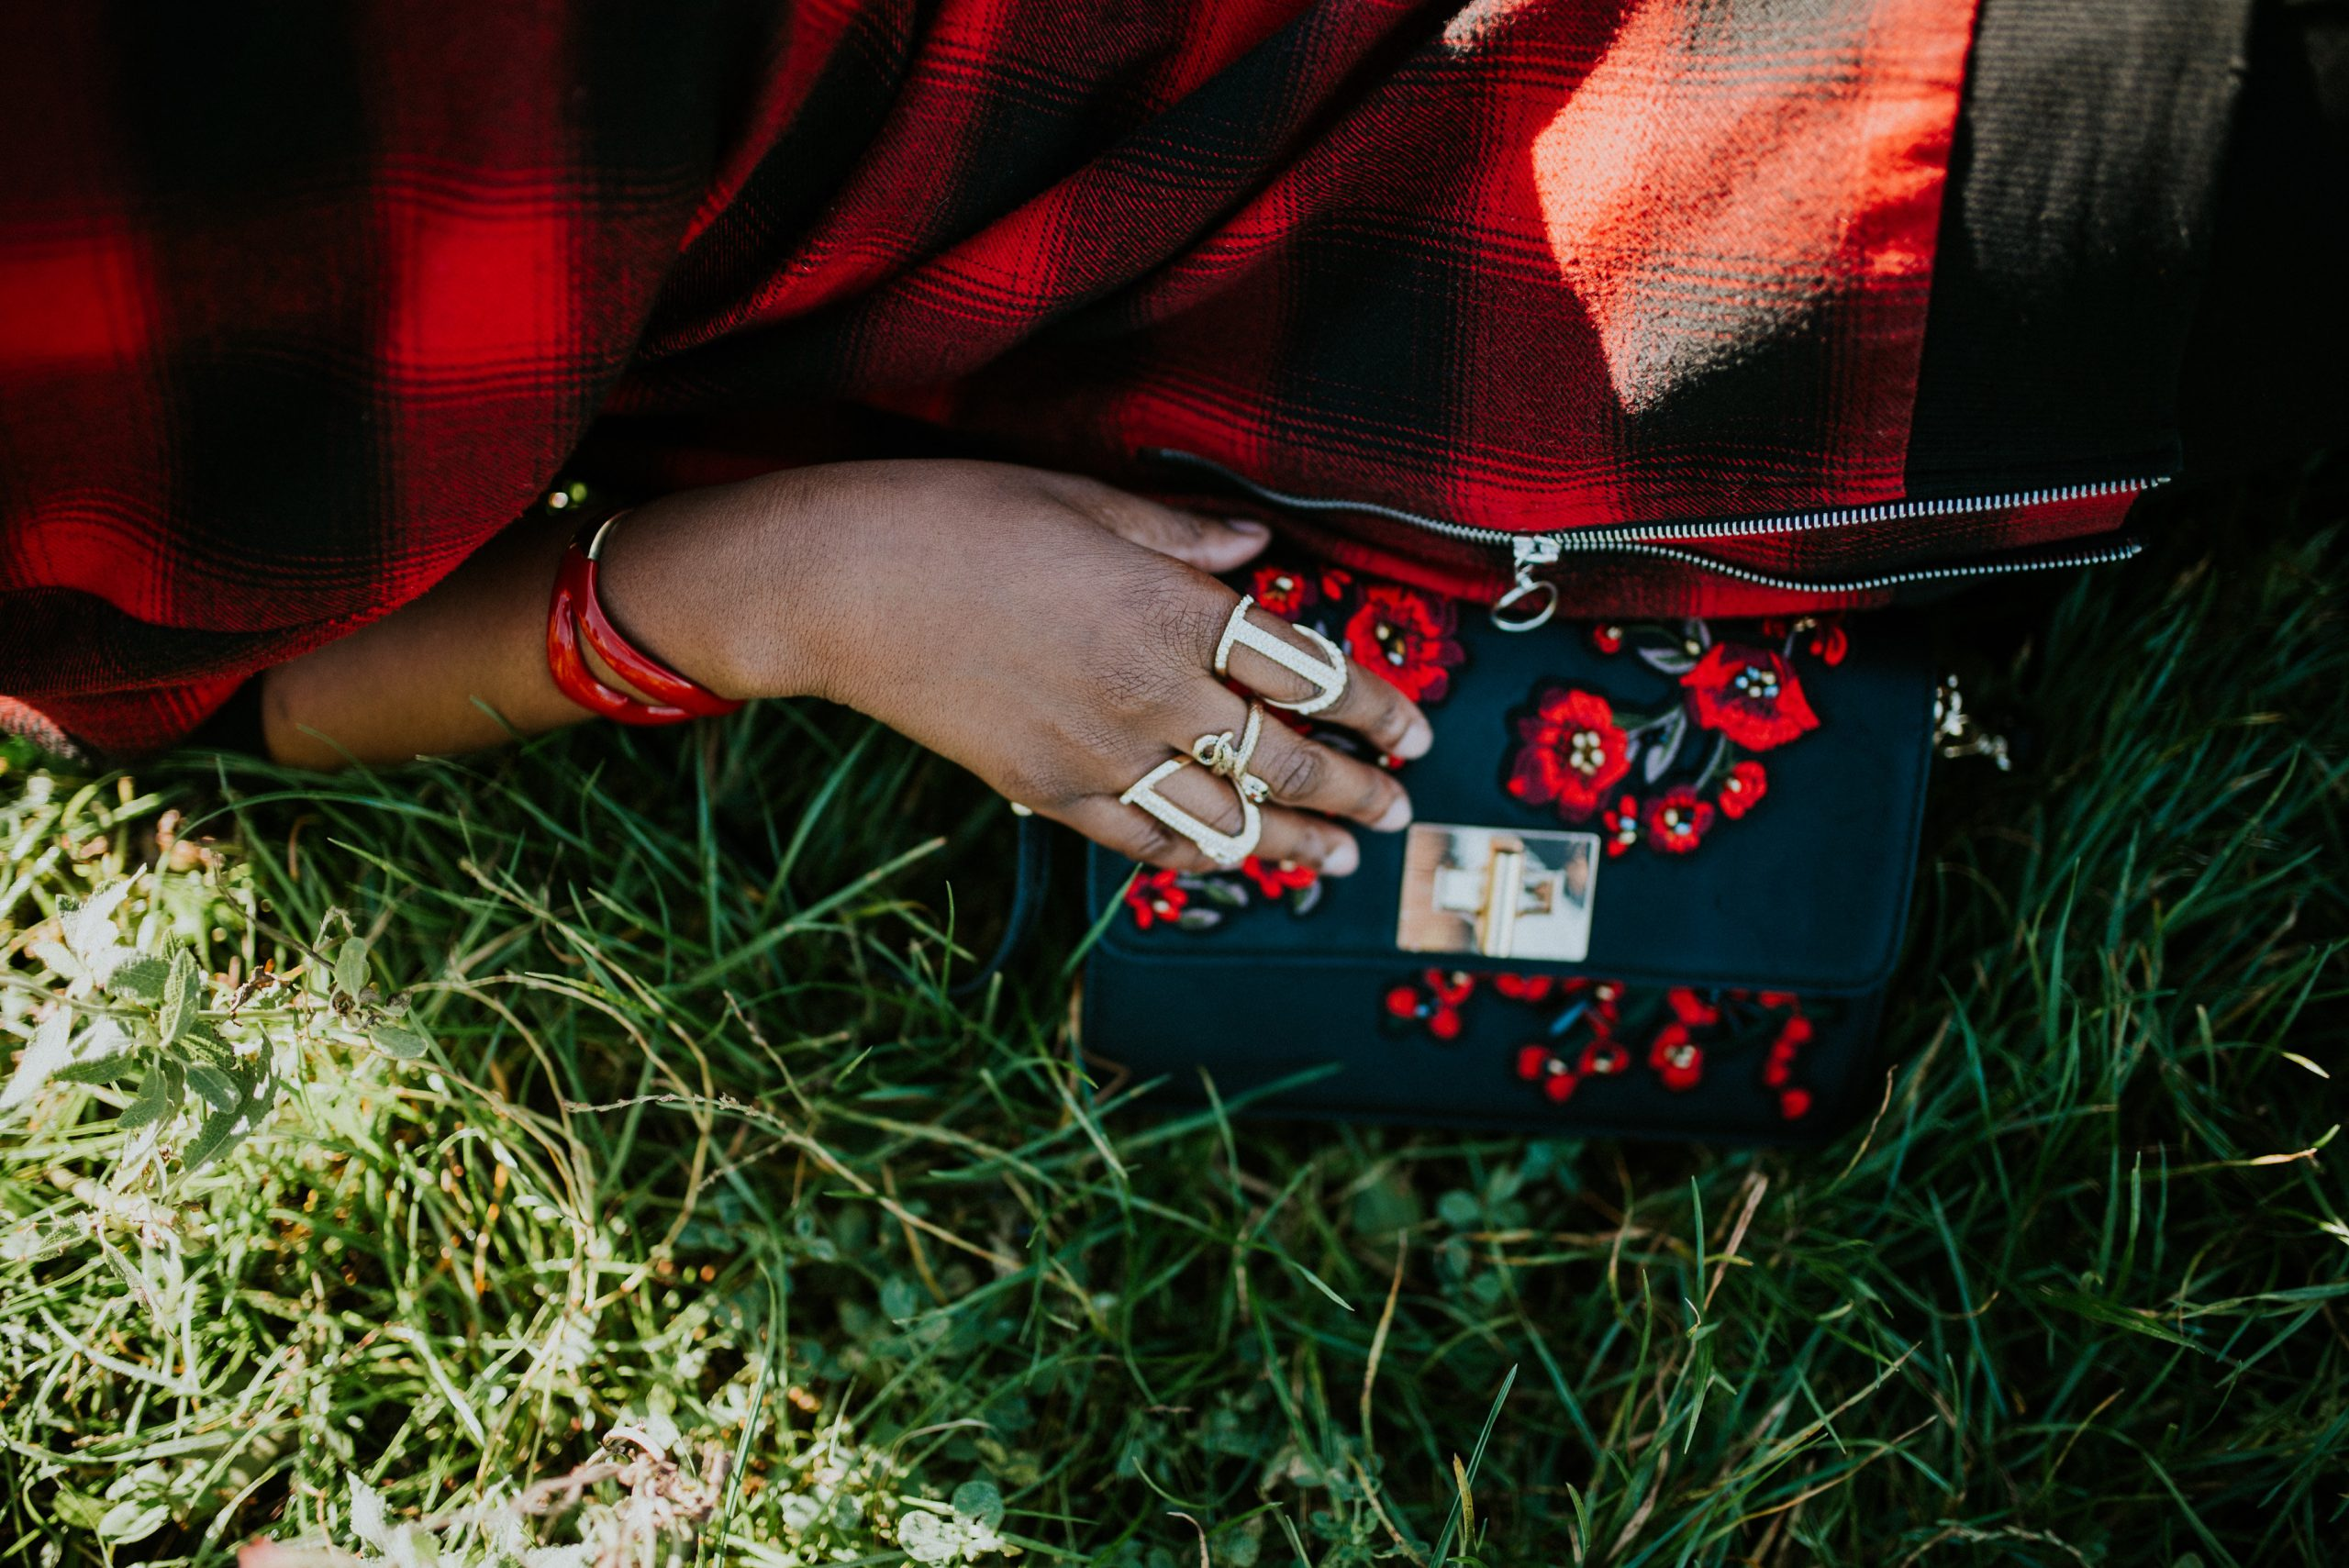 black and red embroided bag